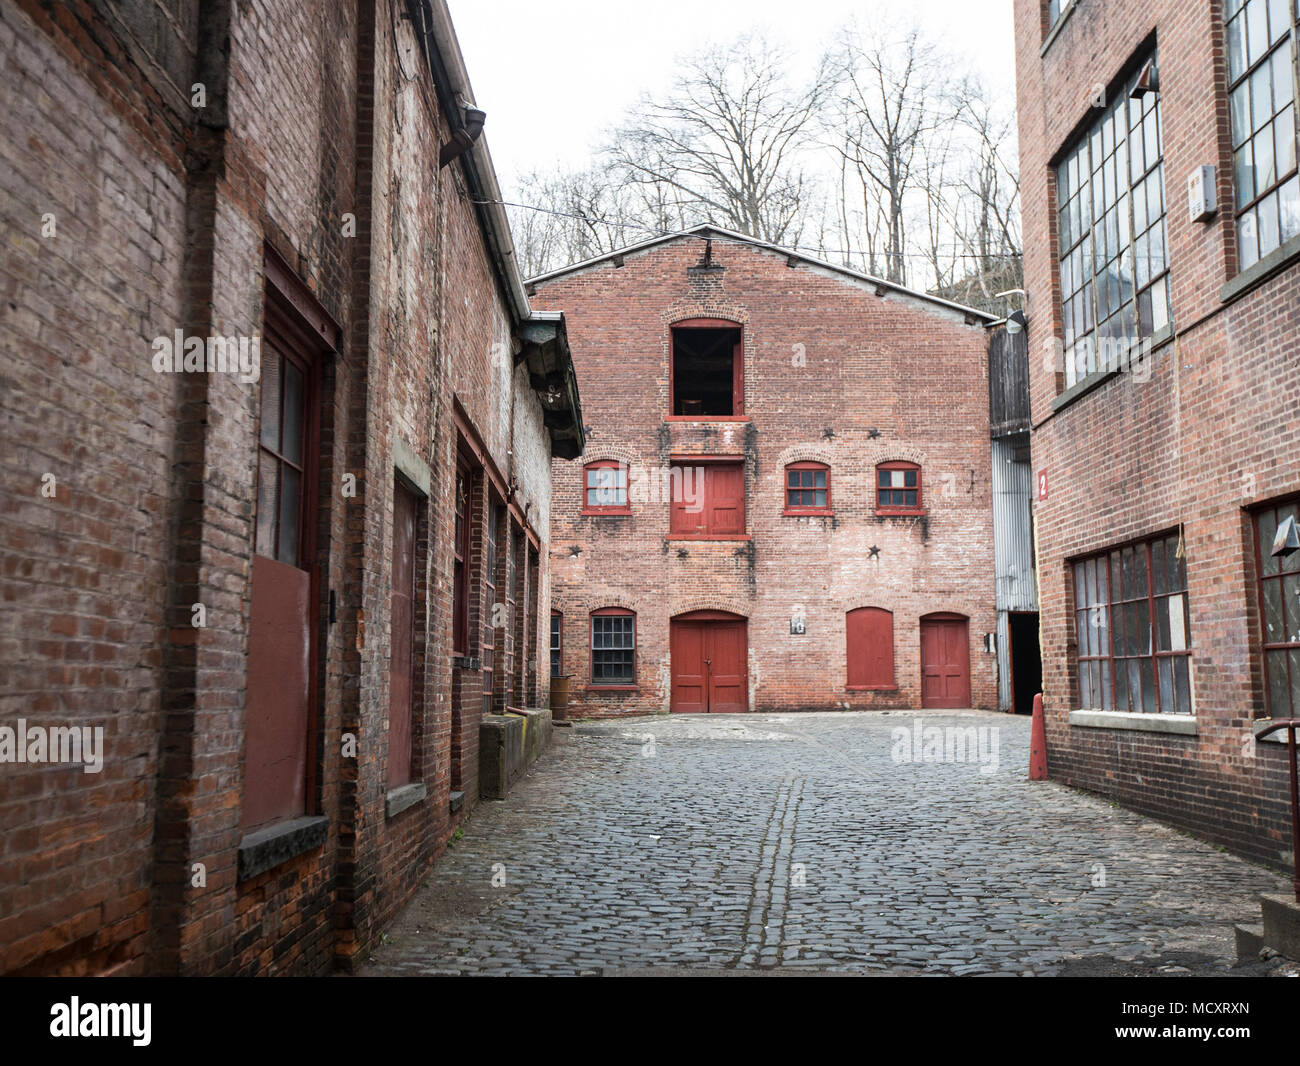 Old factories in the historic district of Patterson, NJ - Stock Image